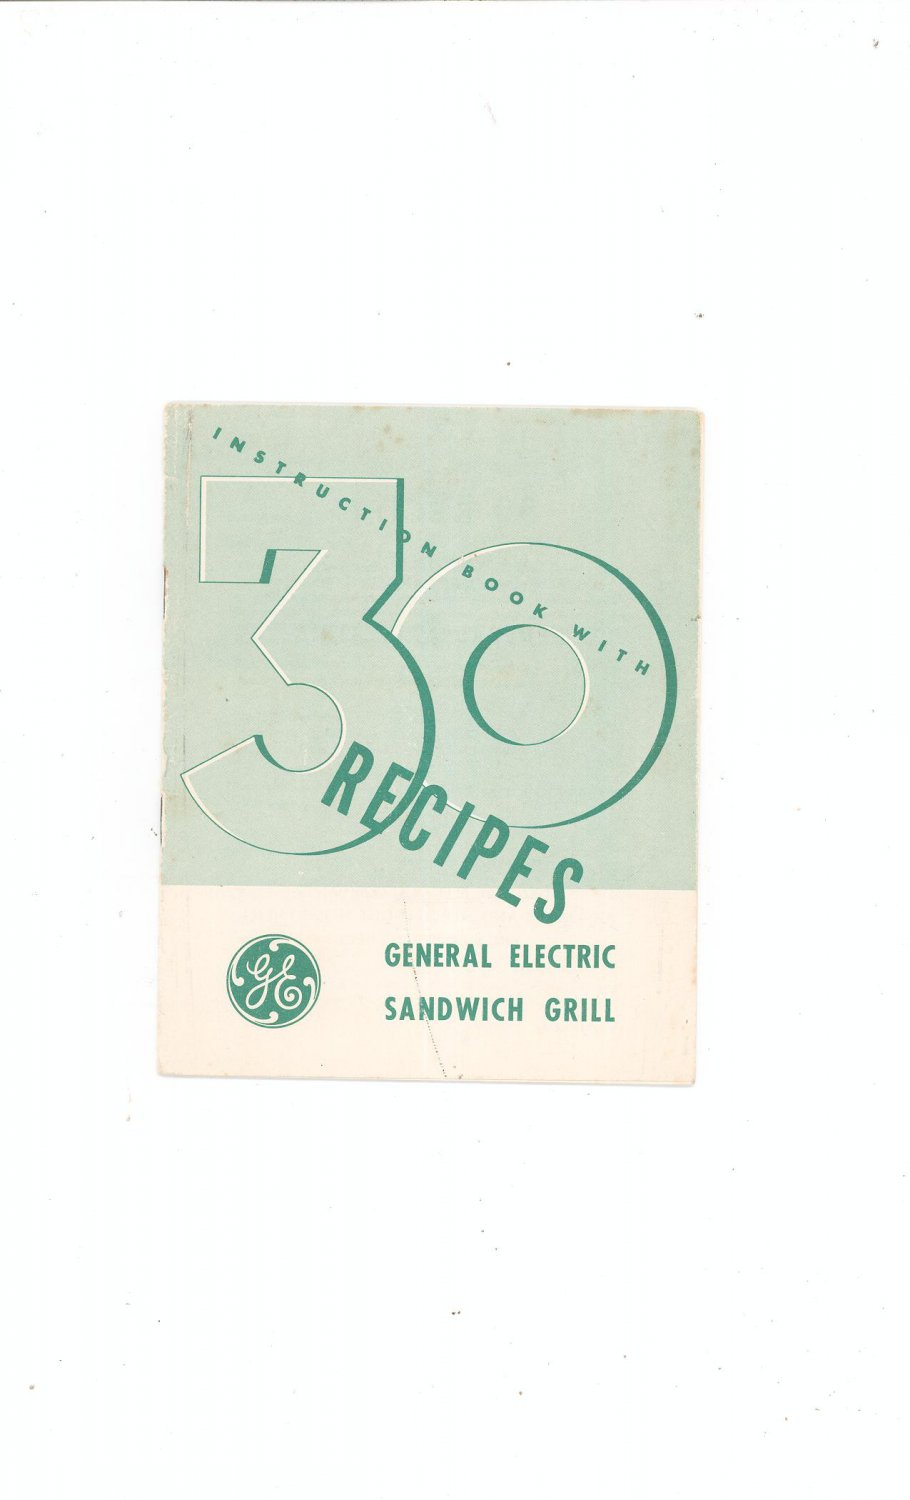 General Electric Sandwich Grill Manual and Recipes Cookbook / Pamphlet